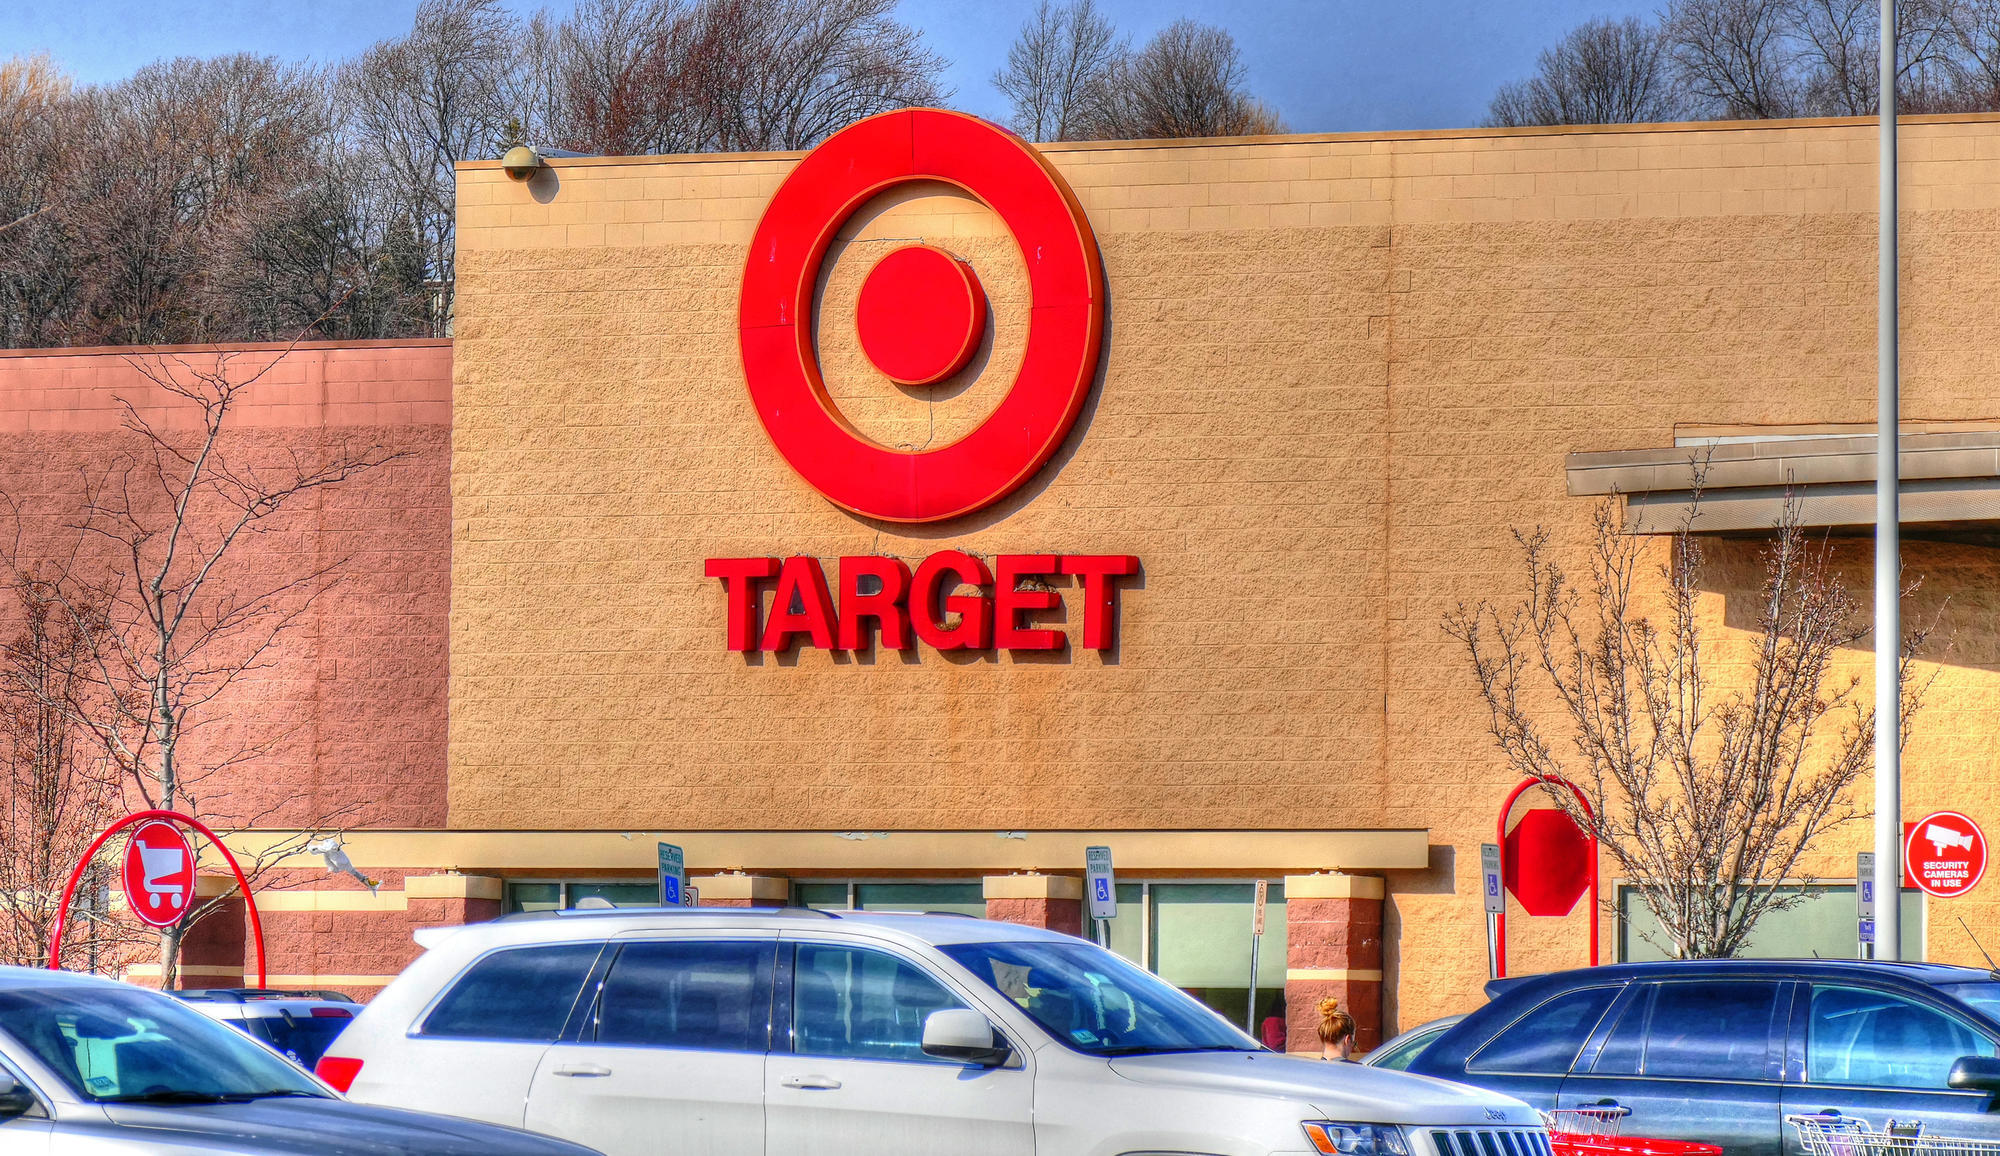 Target Is Rewarding Parents With a $20 Gift Card for Every $100 Spent on Baby Gear